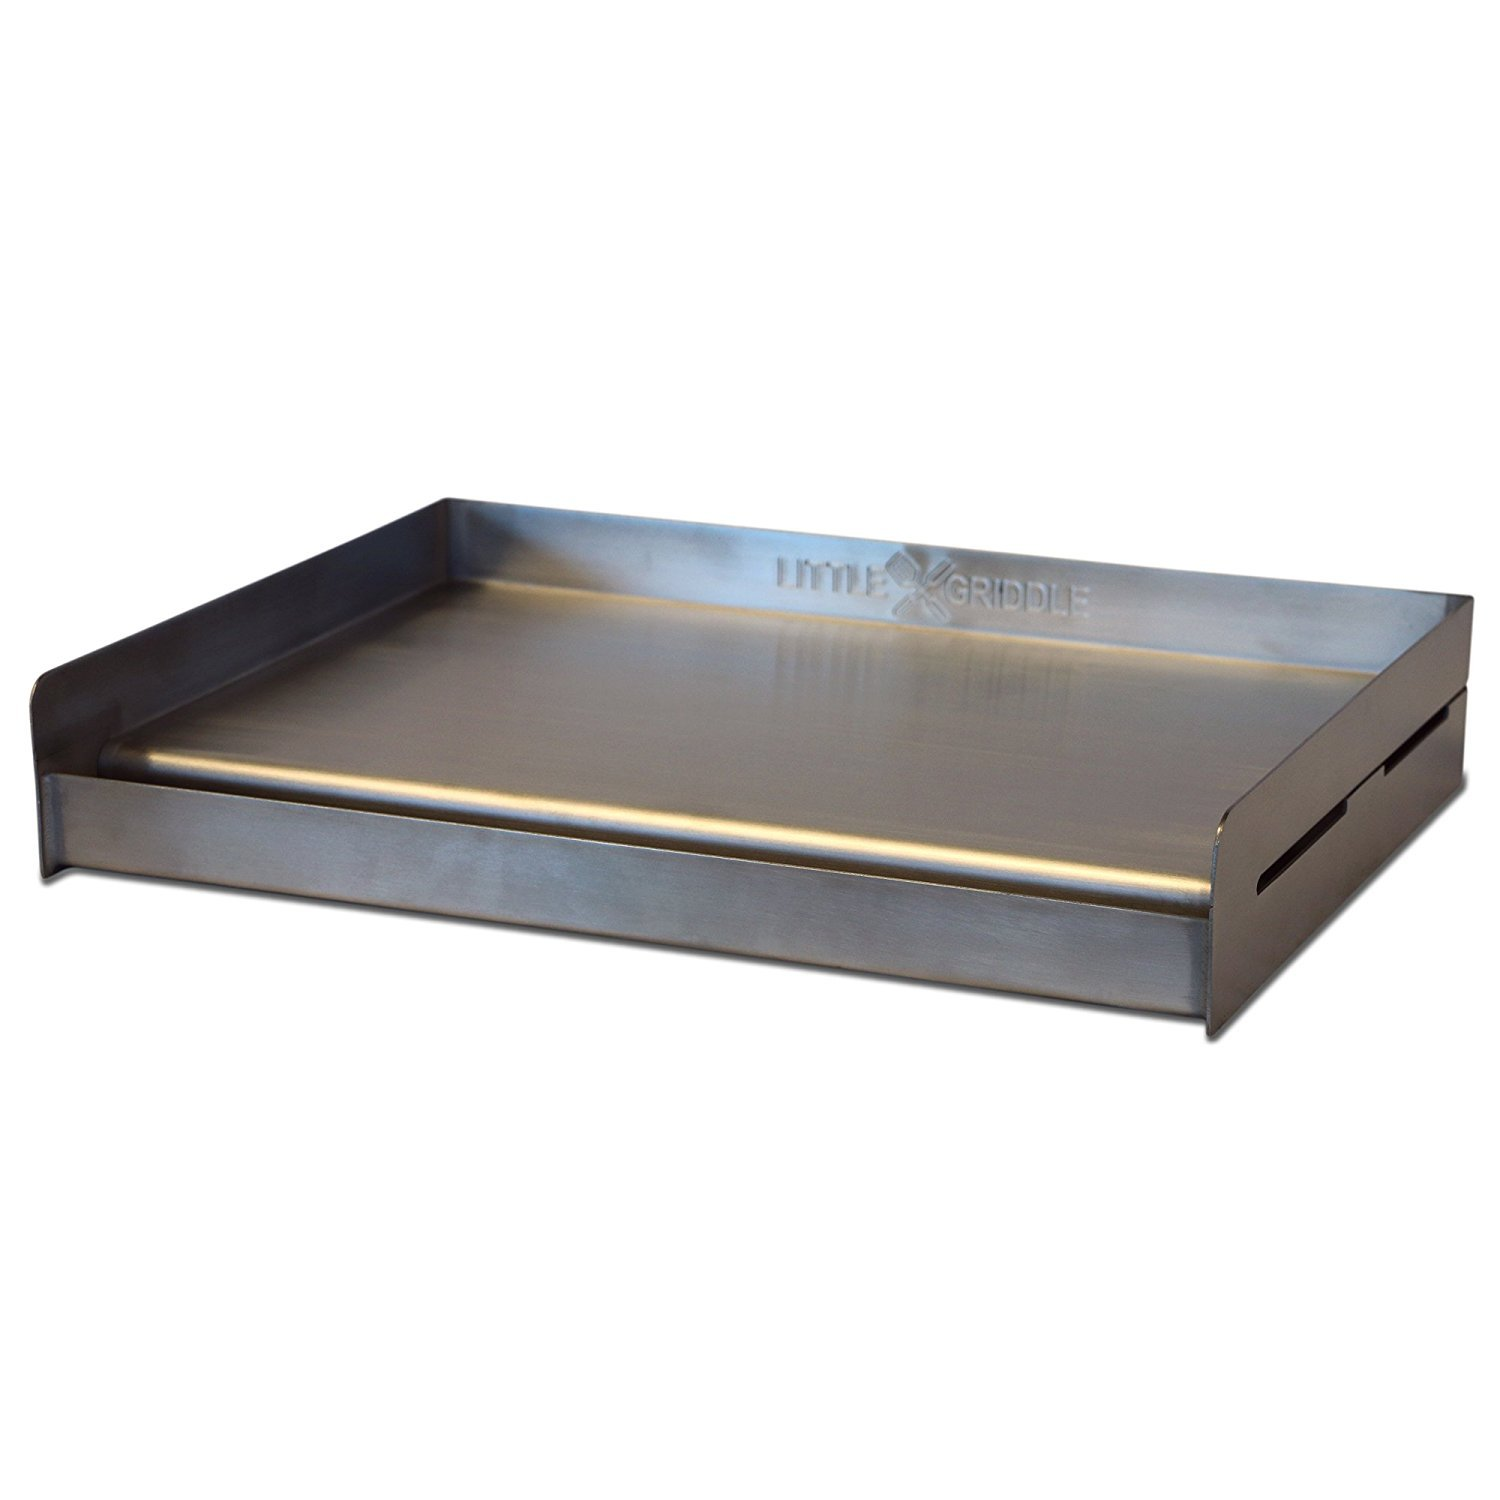 Little Griddle SQ180 Universal Griddle for BBQ Grills, Stainless (Formerly the Sizzle-Q) (Pack of 2) by Little Griddle (Image #4)